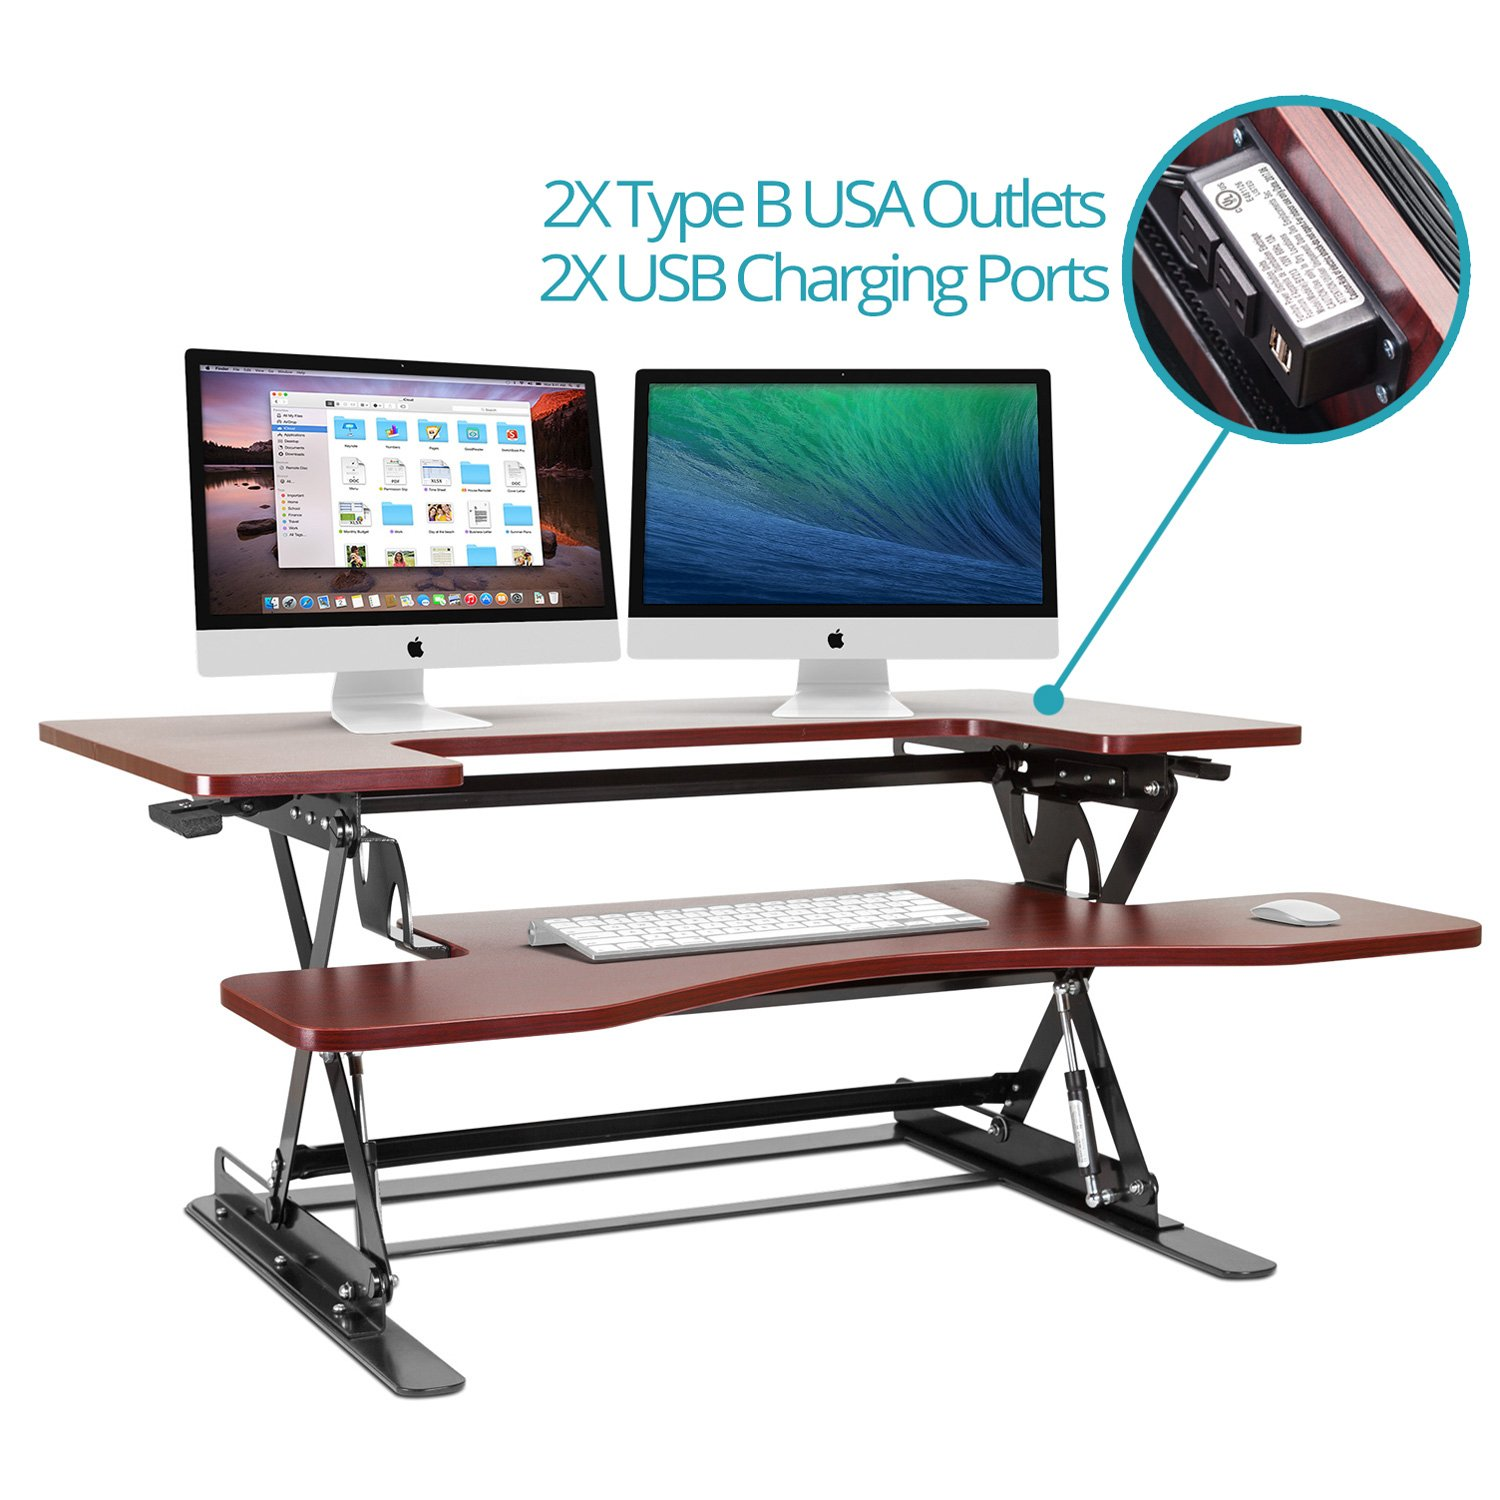 Halter ED-259 Preassembled Height Adjustable Desk Sit / Stand Elevating Desktop with 2 Power Outlets and 2 USB Charging Ports by Halter (Image #1)